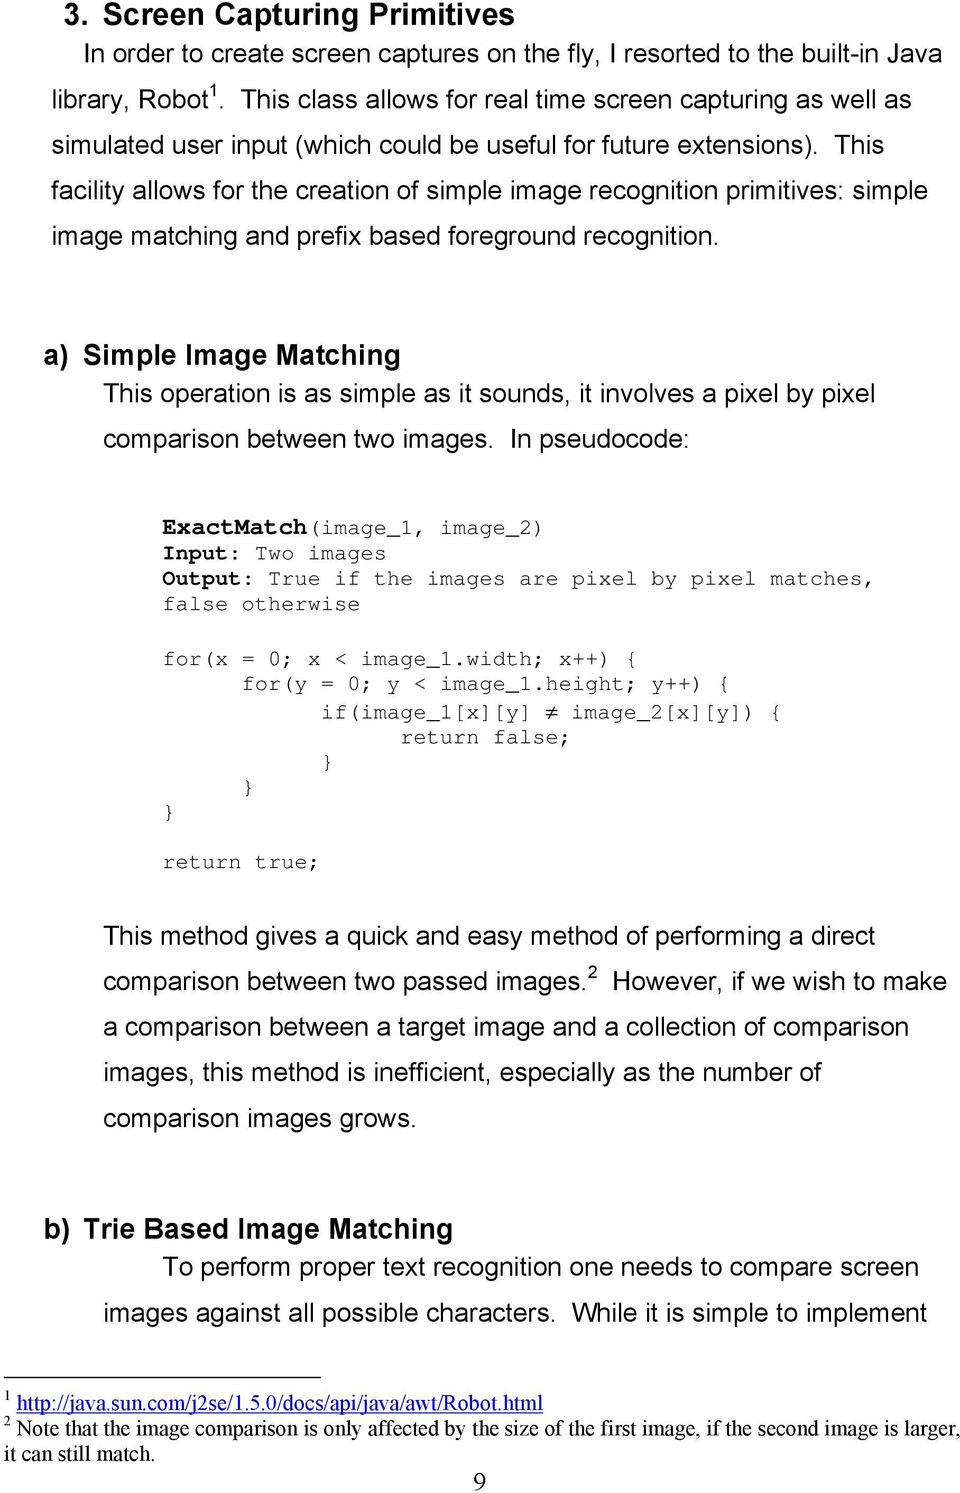 This facility allows for the creation of simple image recognition primitives: simple image matching and prefix based foreground recognition.